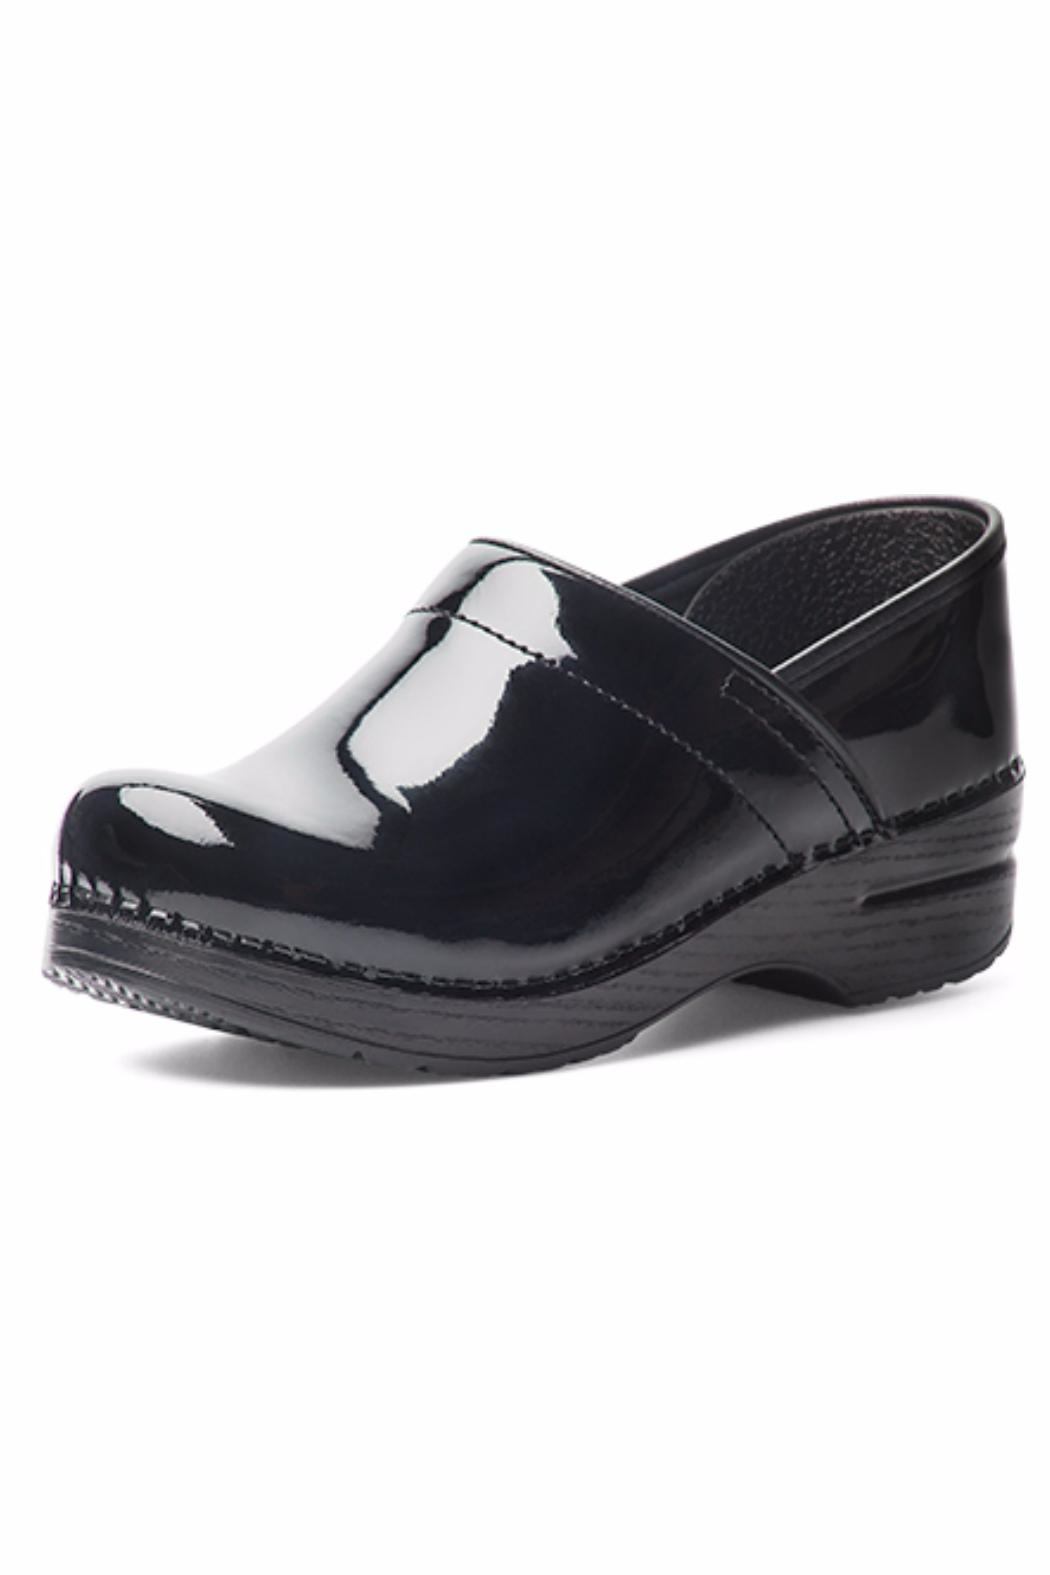 Dansko Black Patent Clog Shoes - Front Cropped Image